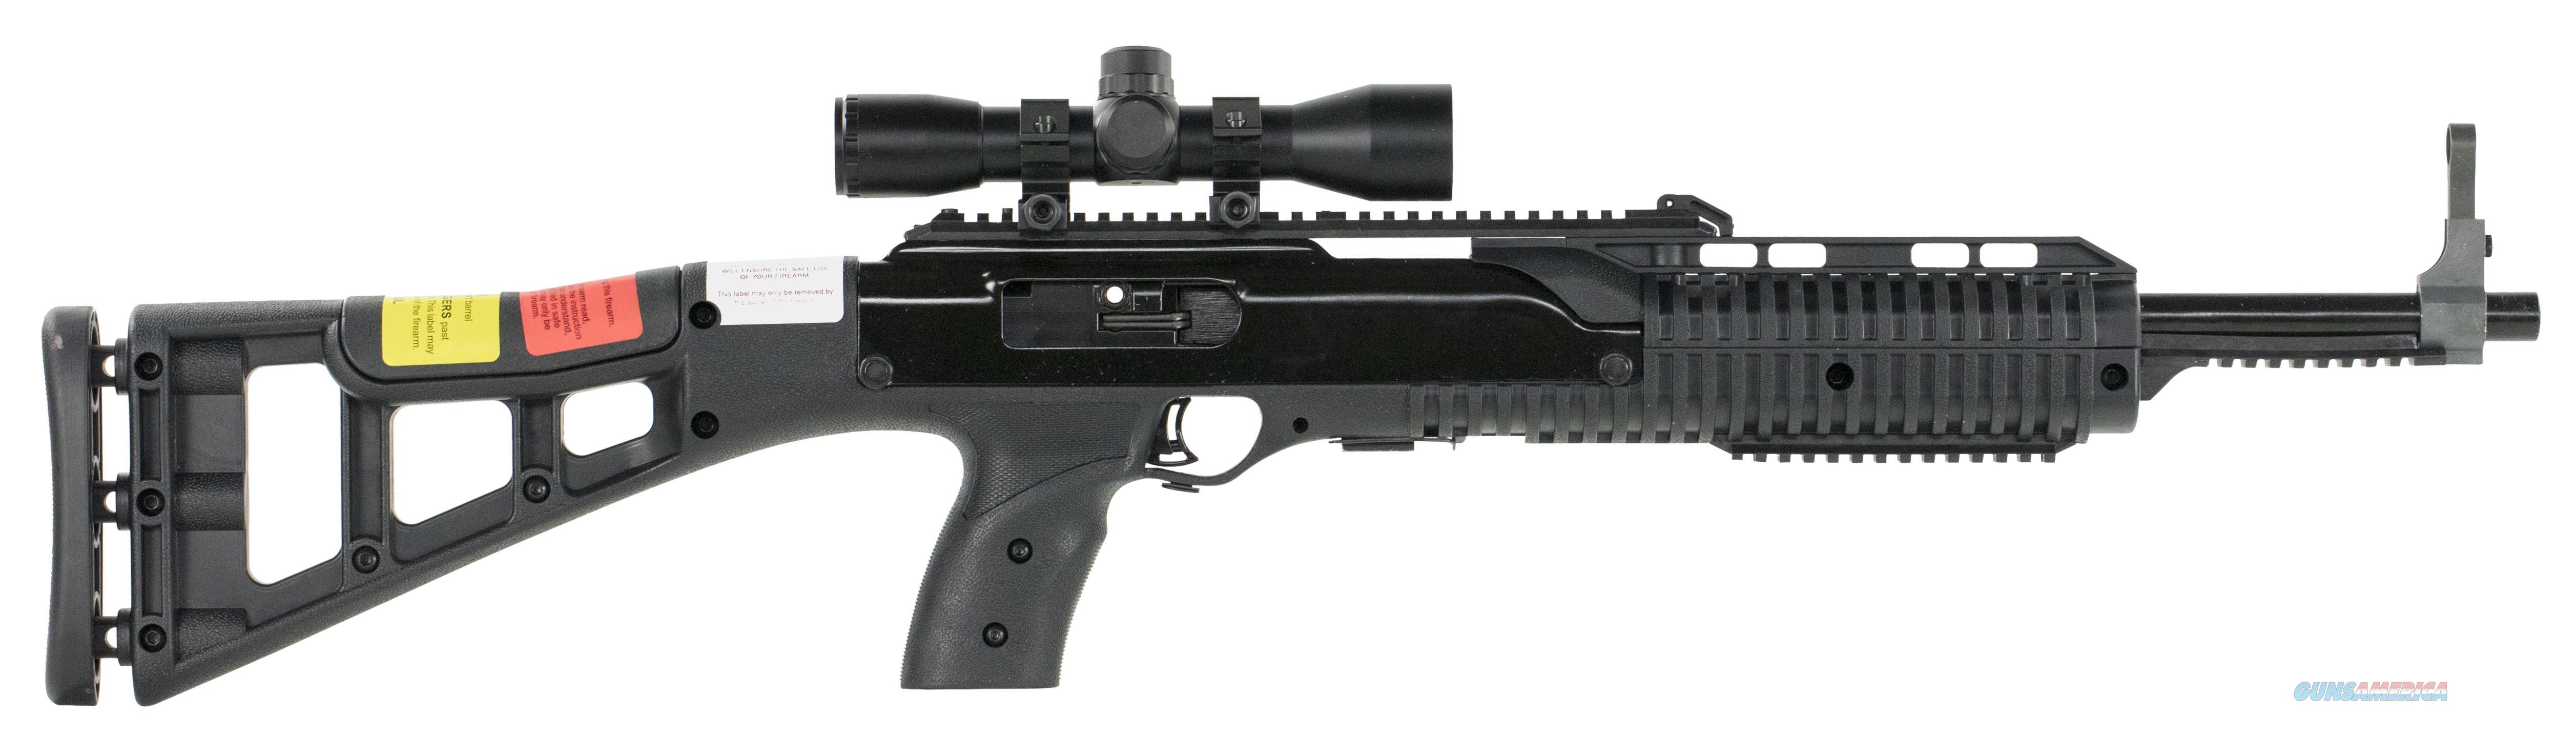 "Hi-Point 9954X32ts 995Ts Carbine Semi-Automatic 9Mm Luger 16.5"" 10+1 4X32 Scope Polymer Skeleton Black Stk Black 995TS 4X  Guns > Rifles > H Misc Rifles"